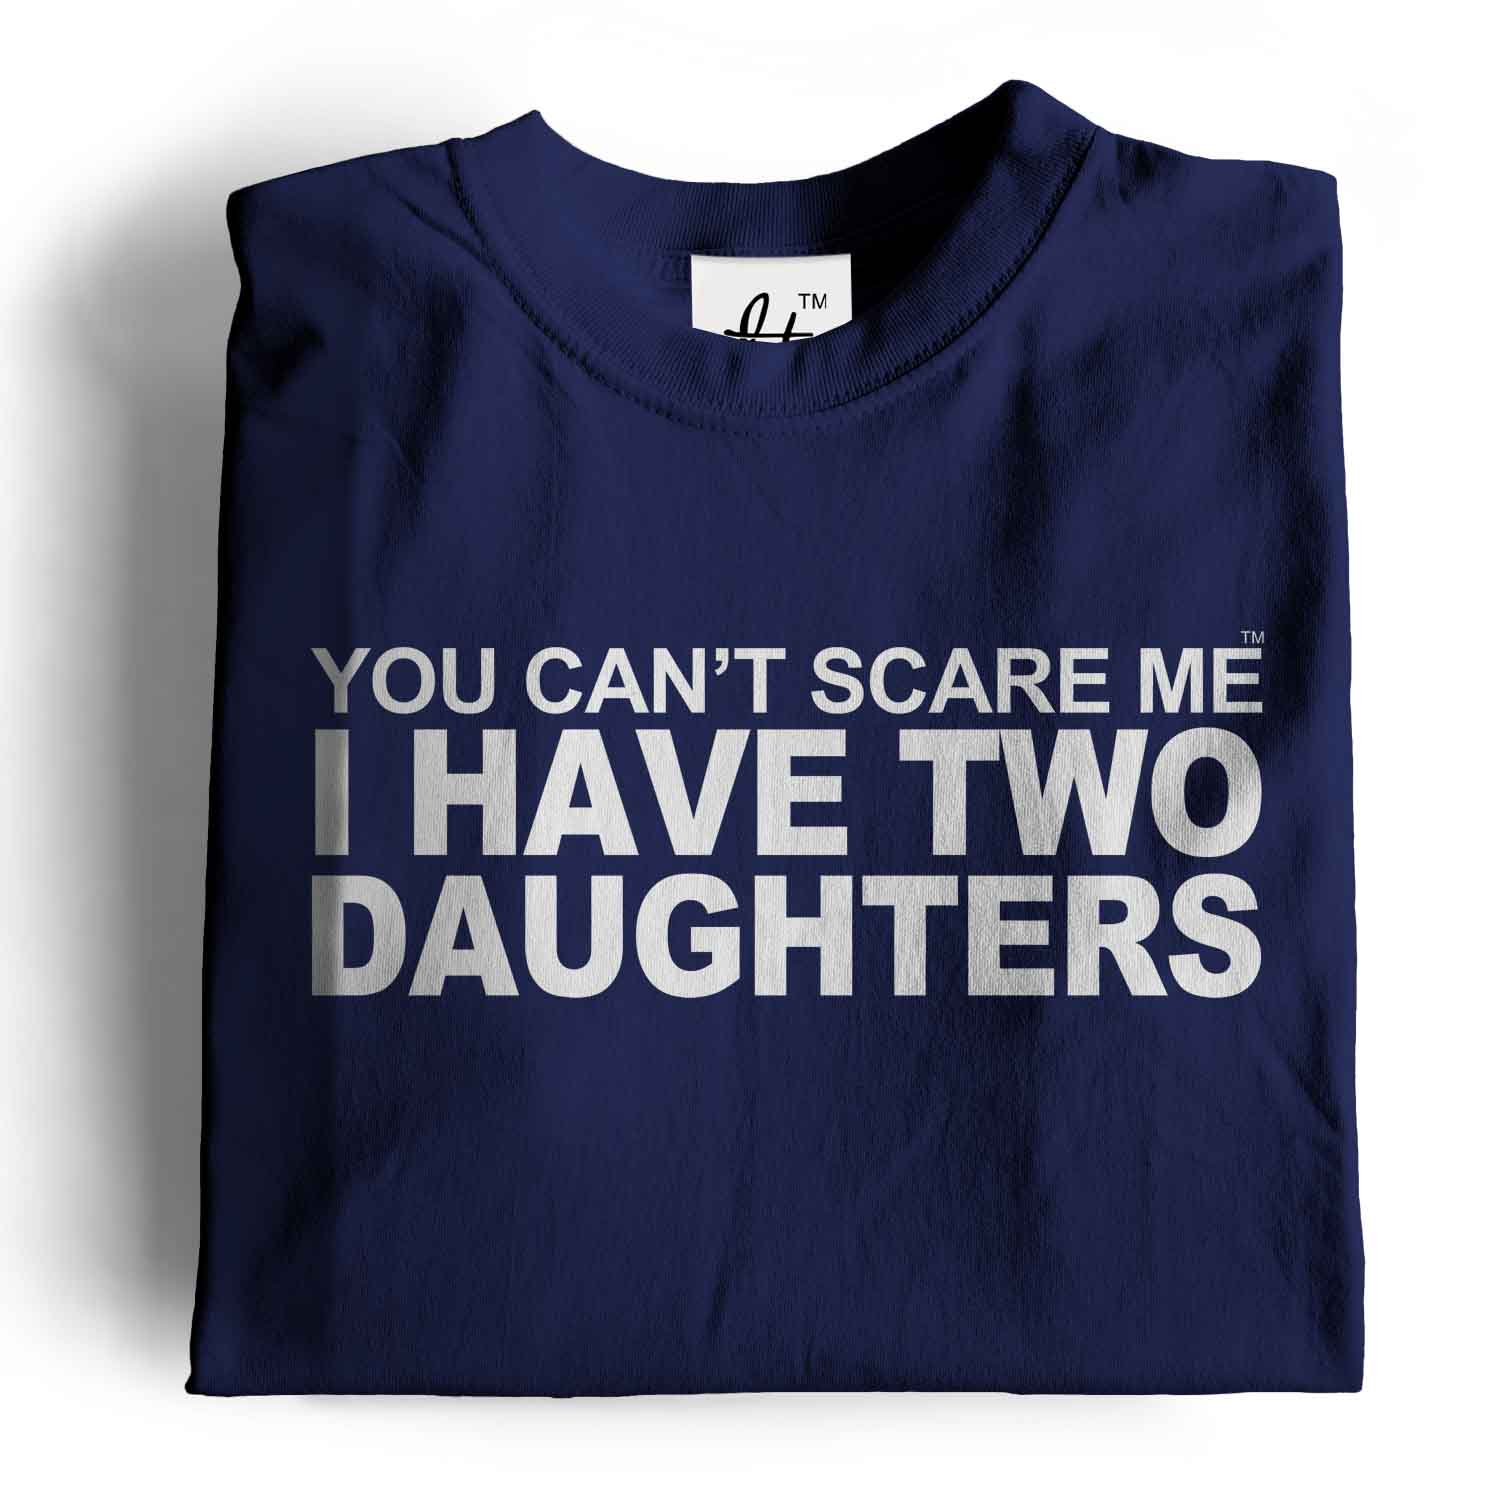 756fb979 You Can't Scare Me I Have 2 Daughters Funny Joke Fathers Day Gift ...